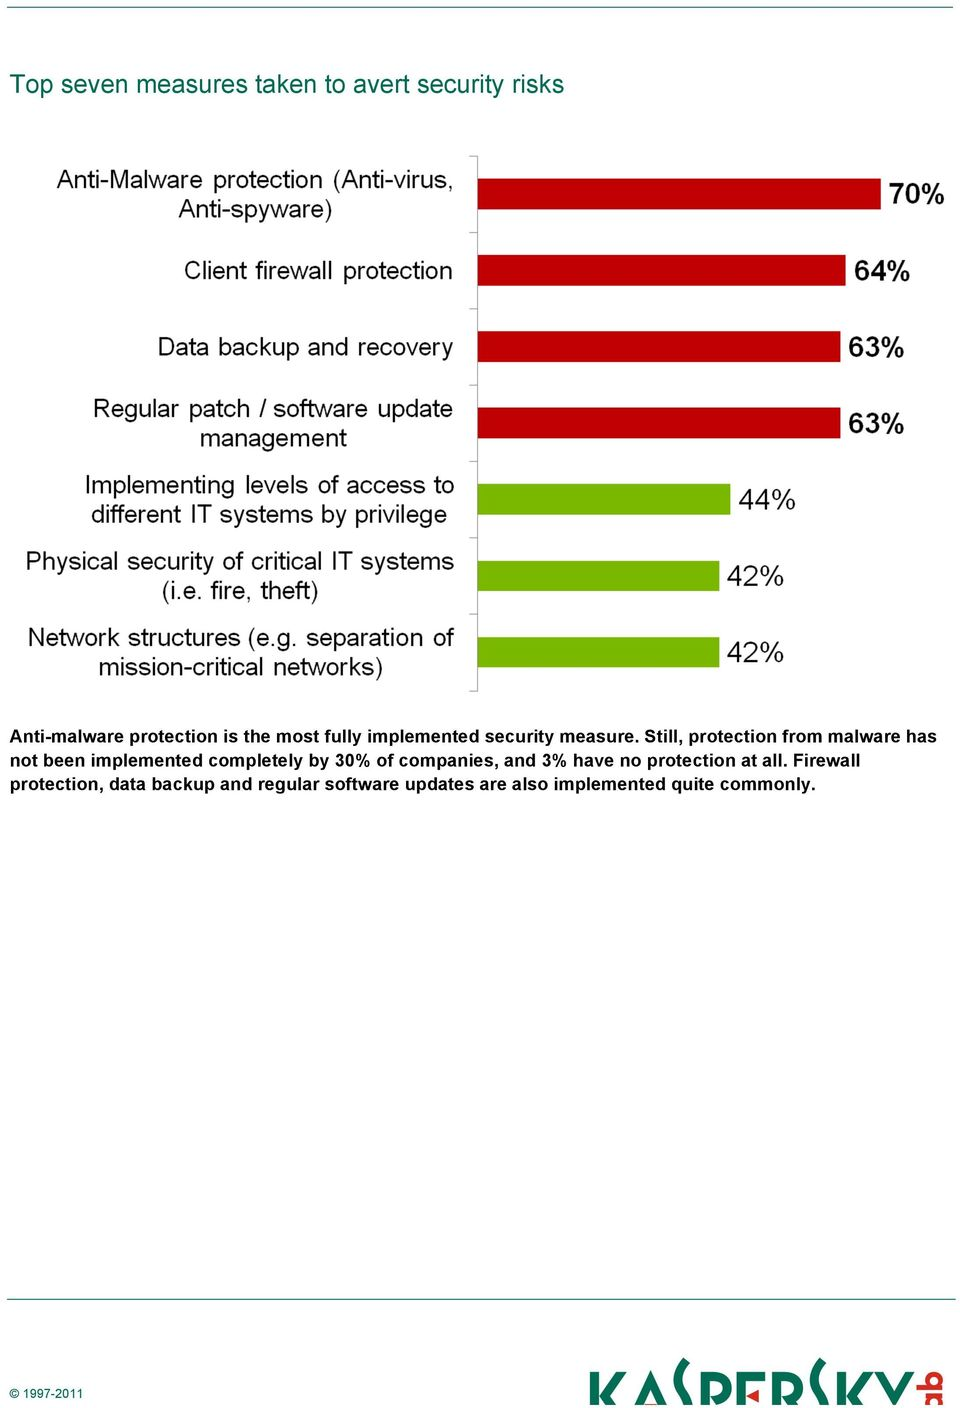 Still, protection from malware has not been implemented completely by 30% of